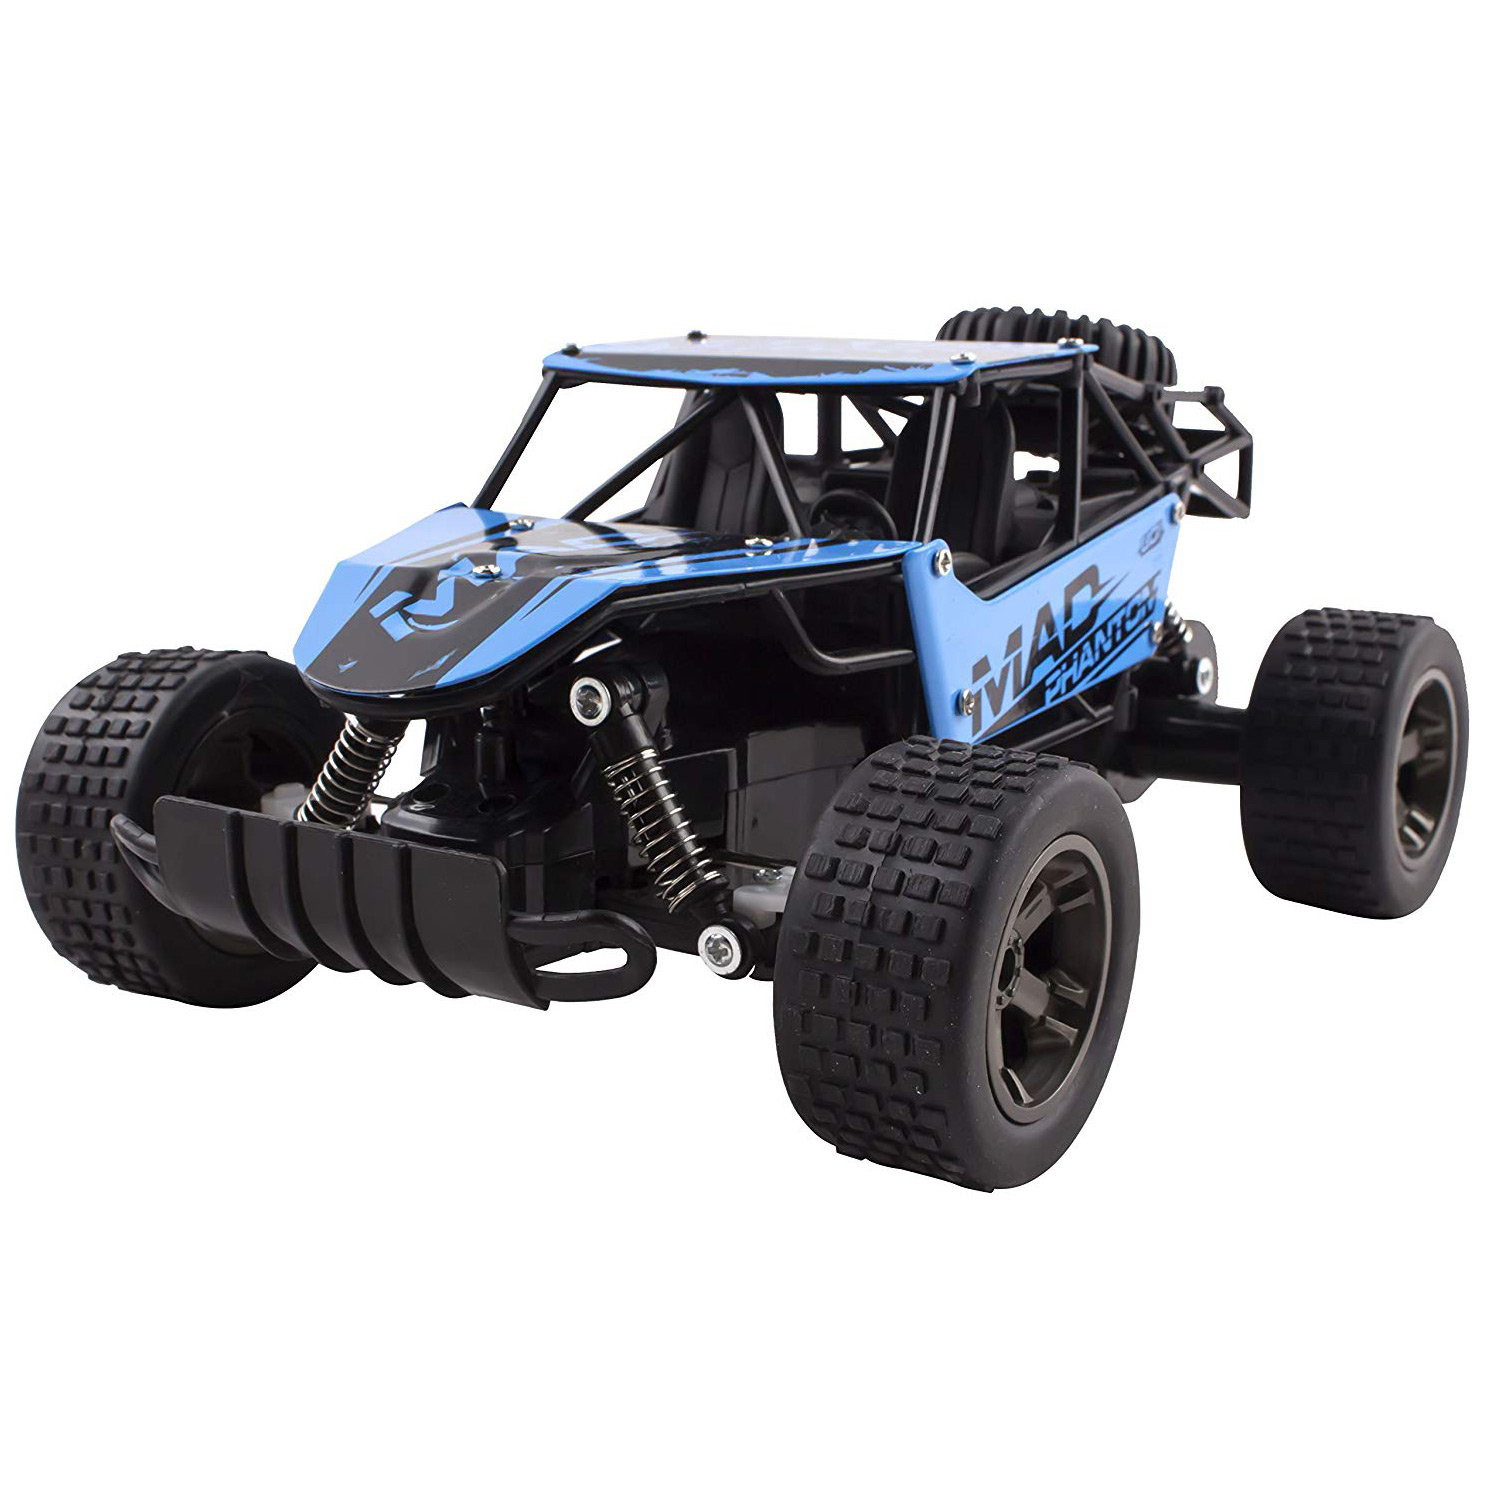 RC Truck 2.4 GHz Mad Turbo King Cheetah Diecast Body Remote Control Buggy Car 1:18 Scale RTR With Working Off-Road Suspension High Speed Radio Control Hobby Truggy Rechargeable Battery Included (Blue)